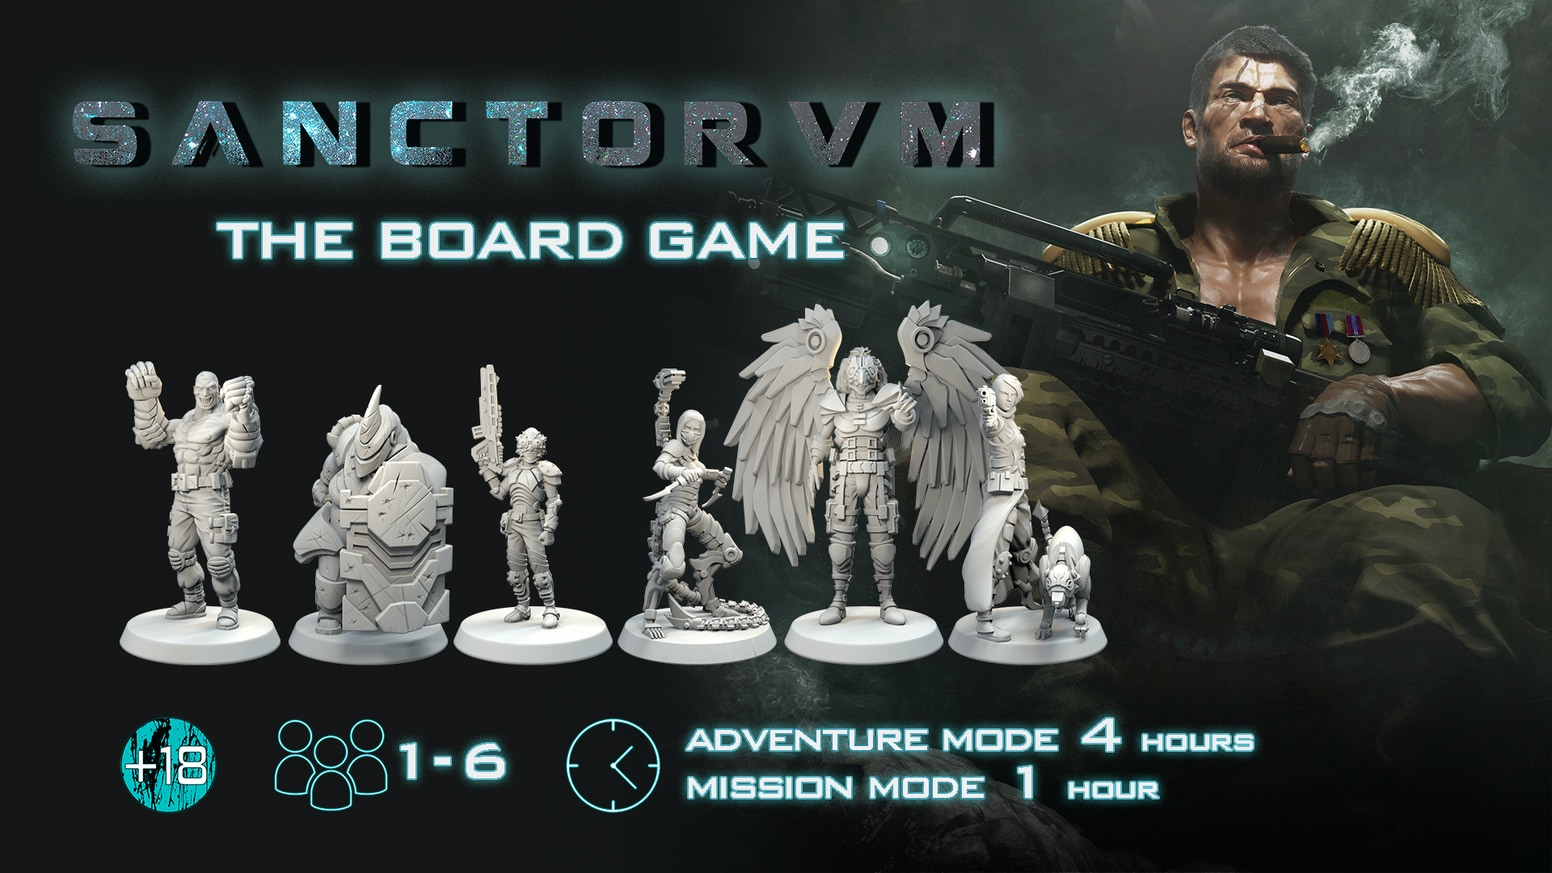 A cooperative game of sci-fi survival horror for 1-6 players. Fight and take decisions to survive!